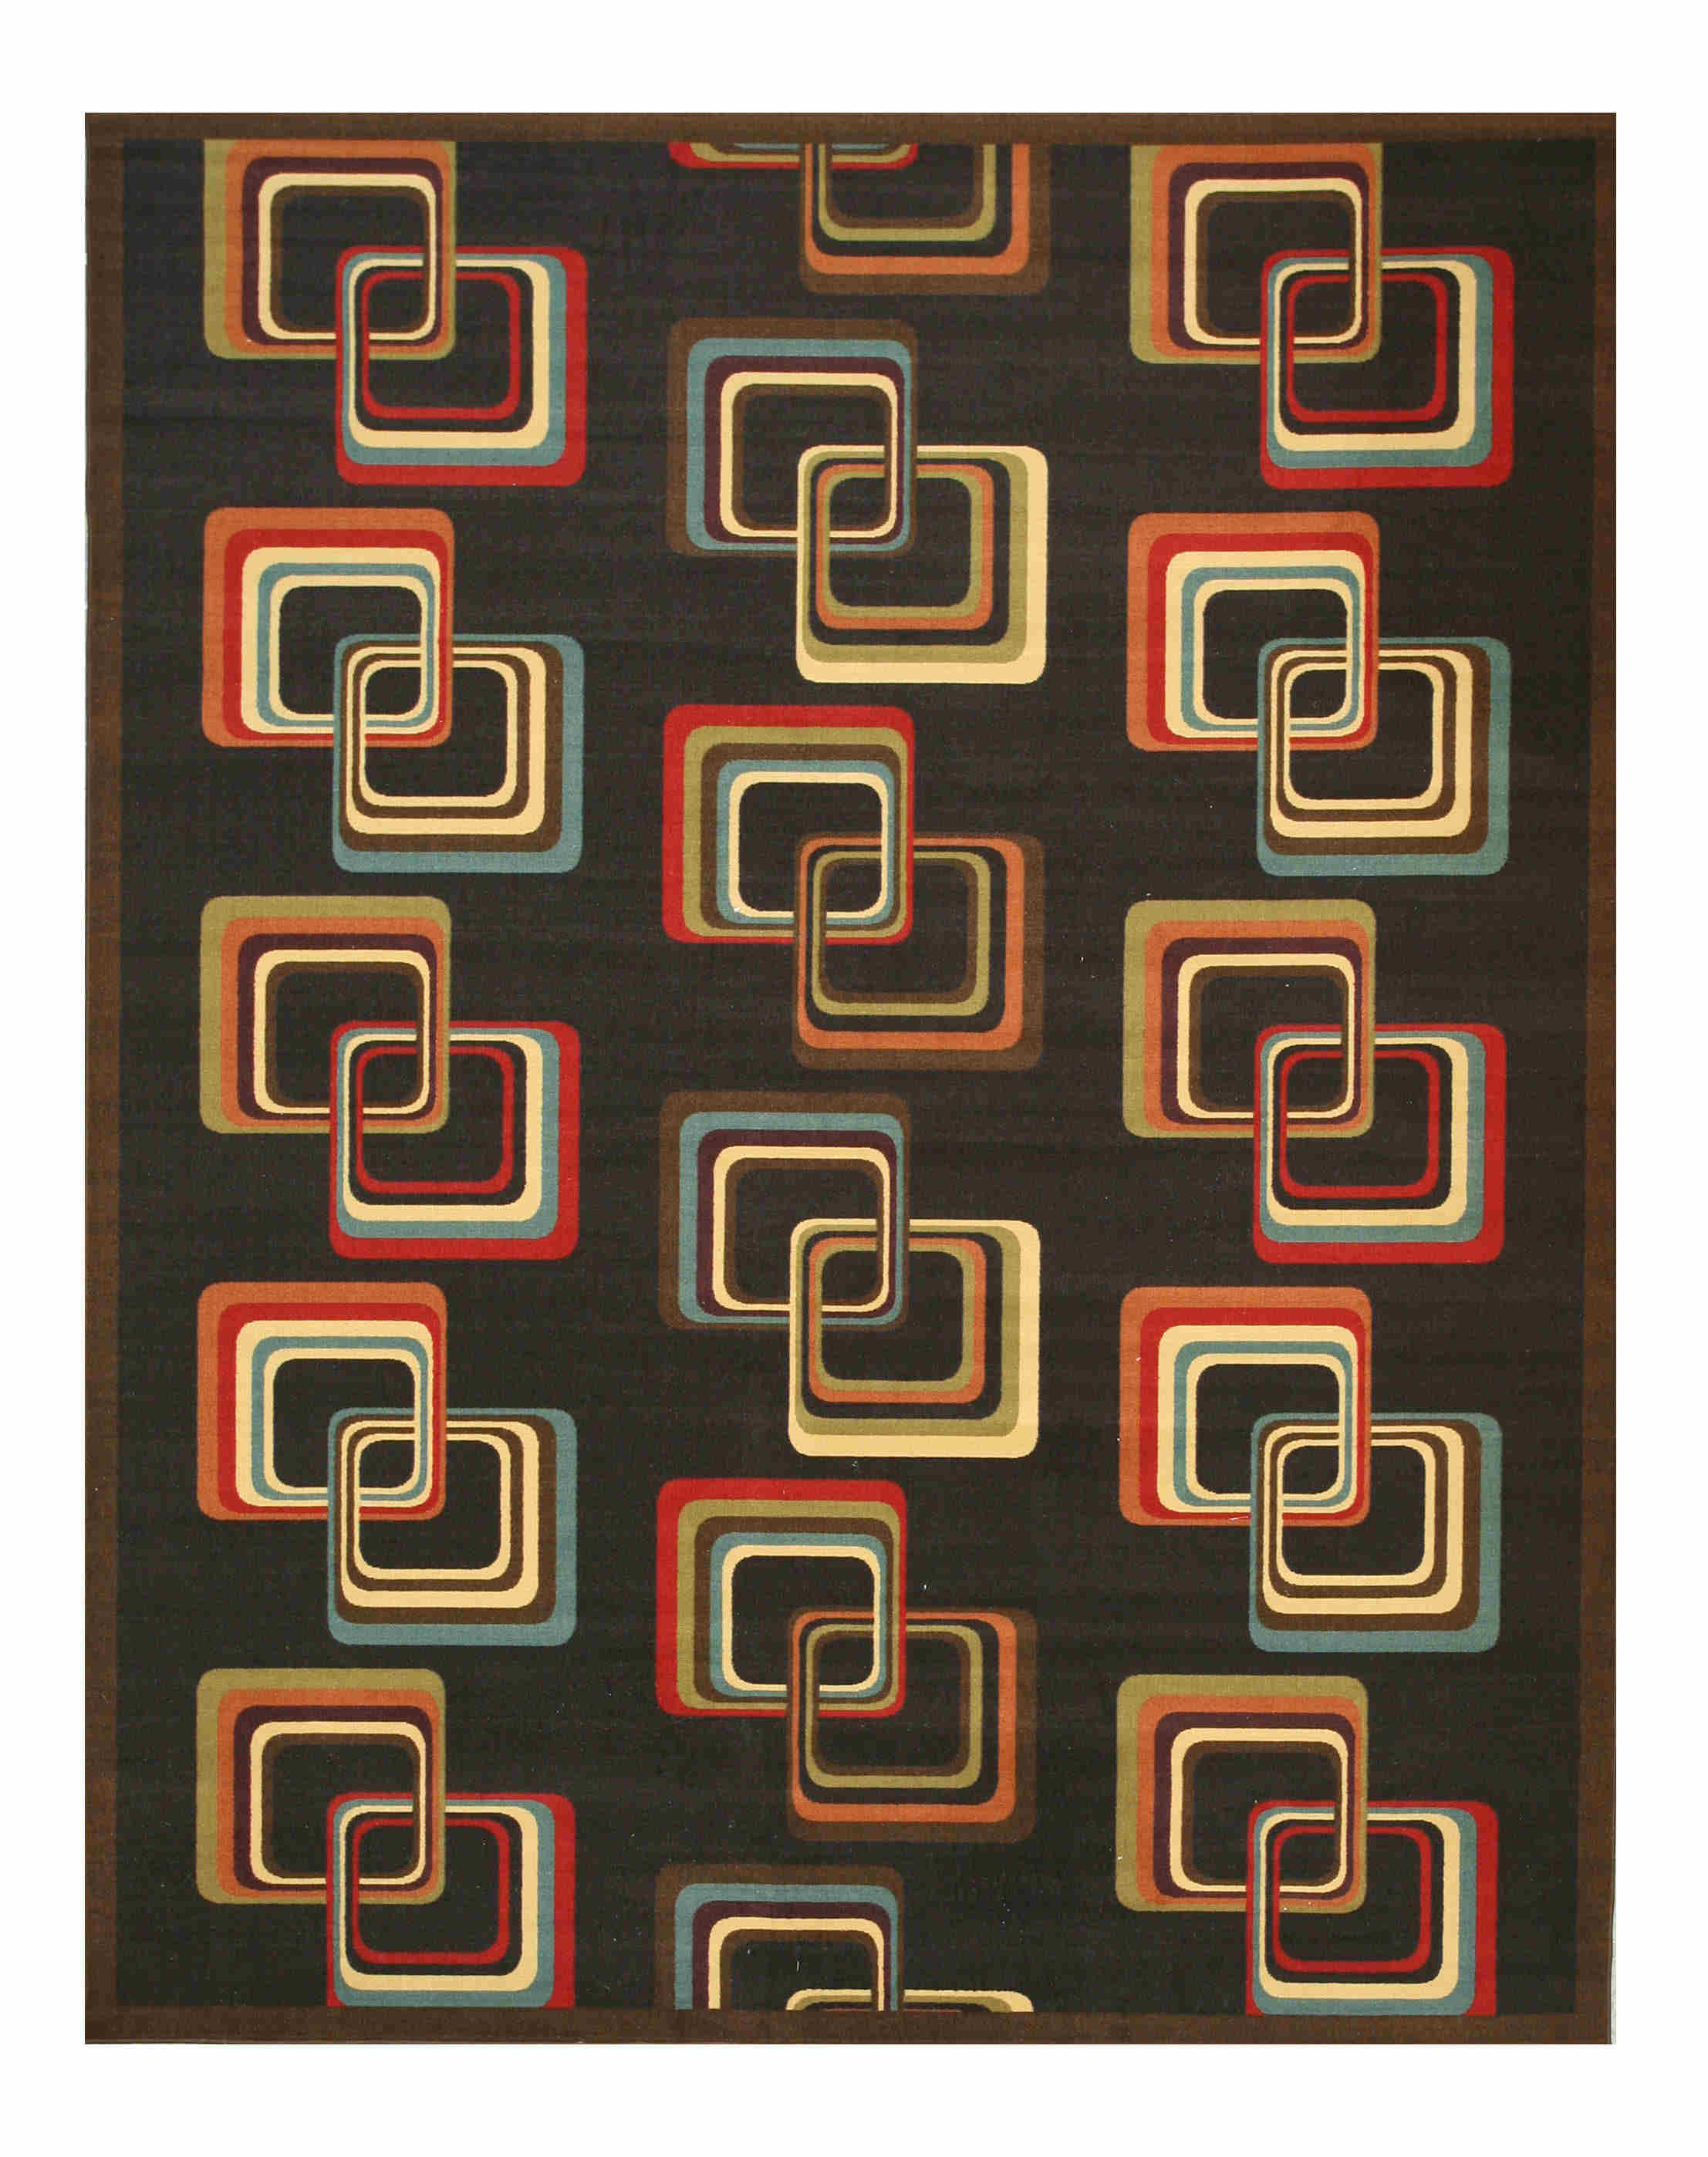 Eorc Os5090bk Black Retro-chick Rug